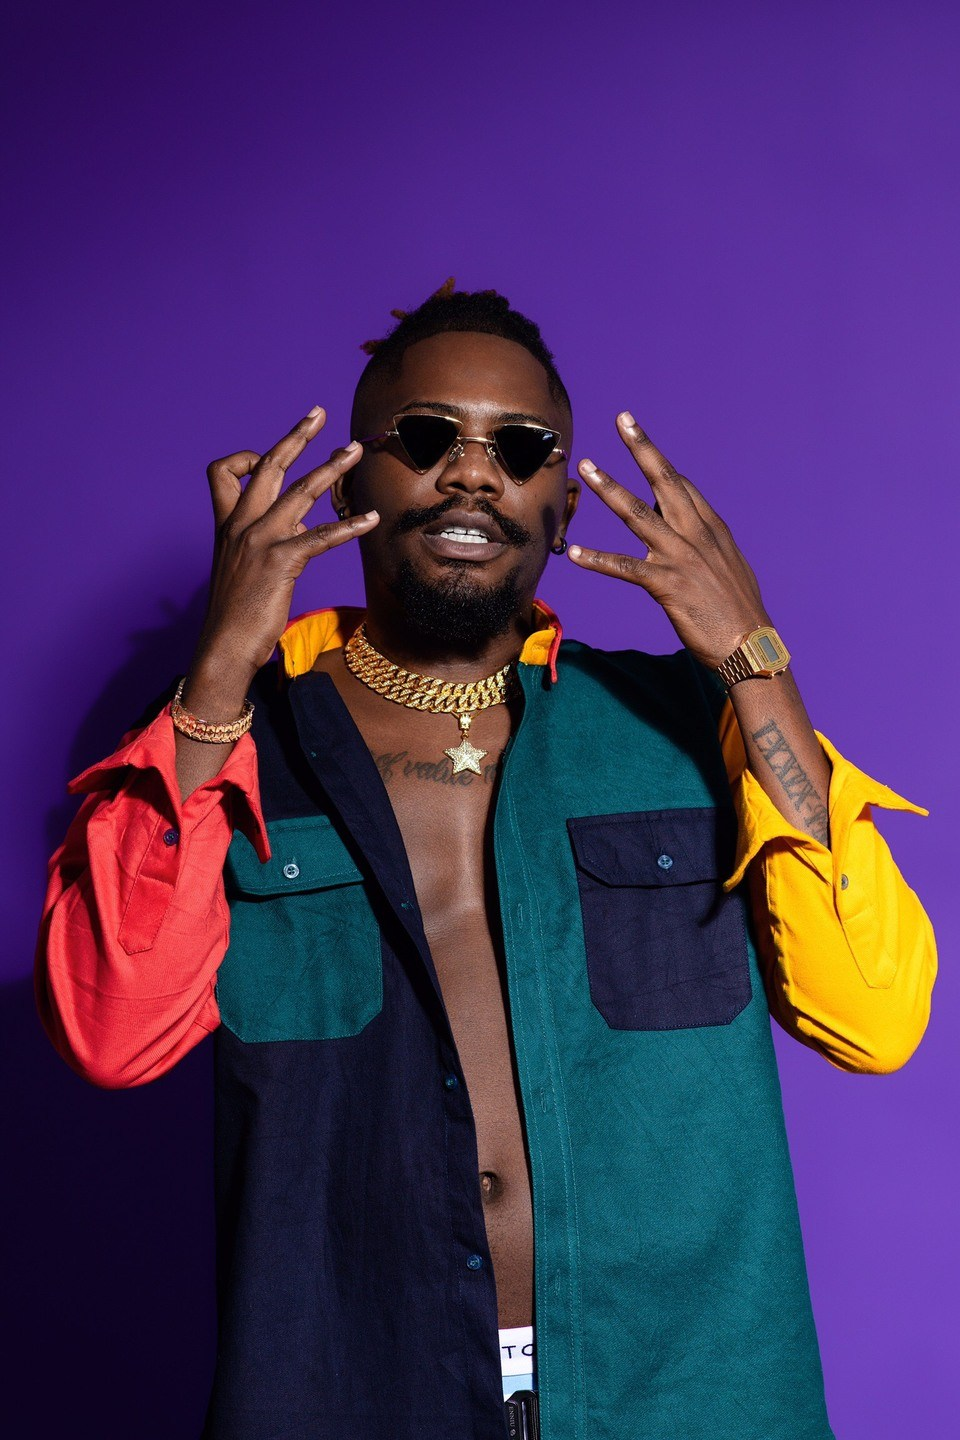 Ycee Calls Out Former Record Label, says CEO Profits Off Of Other People's Sweat